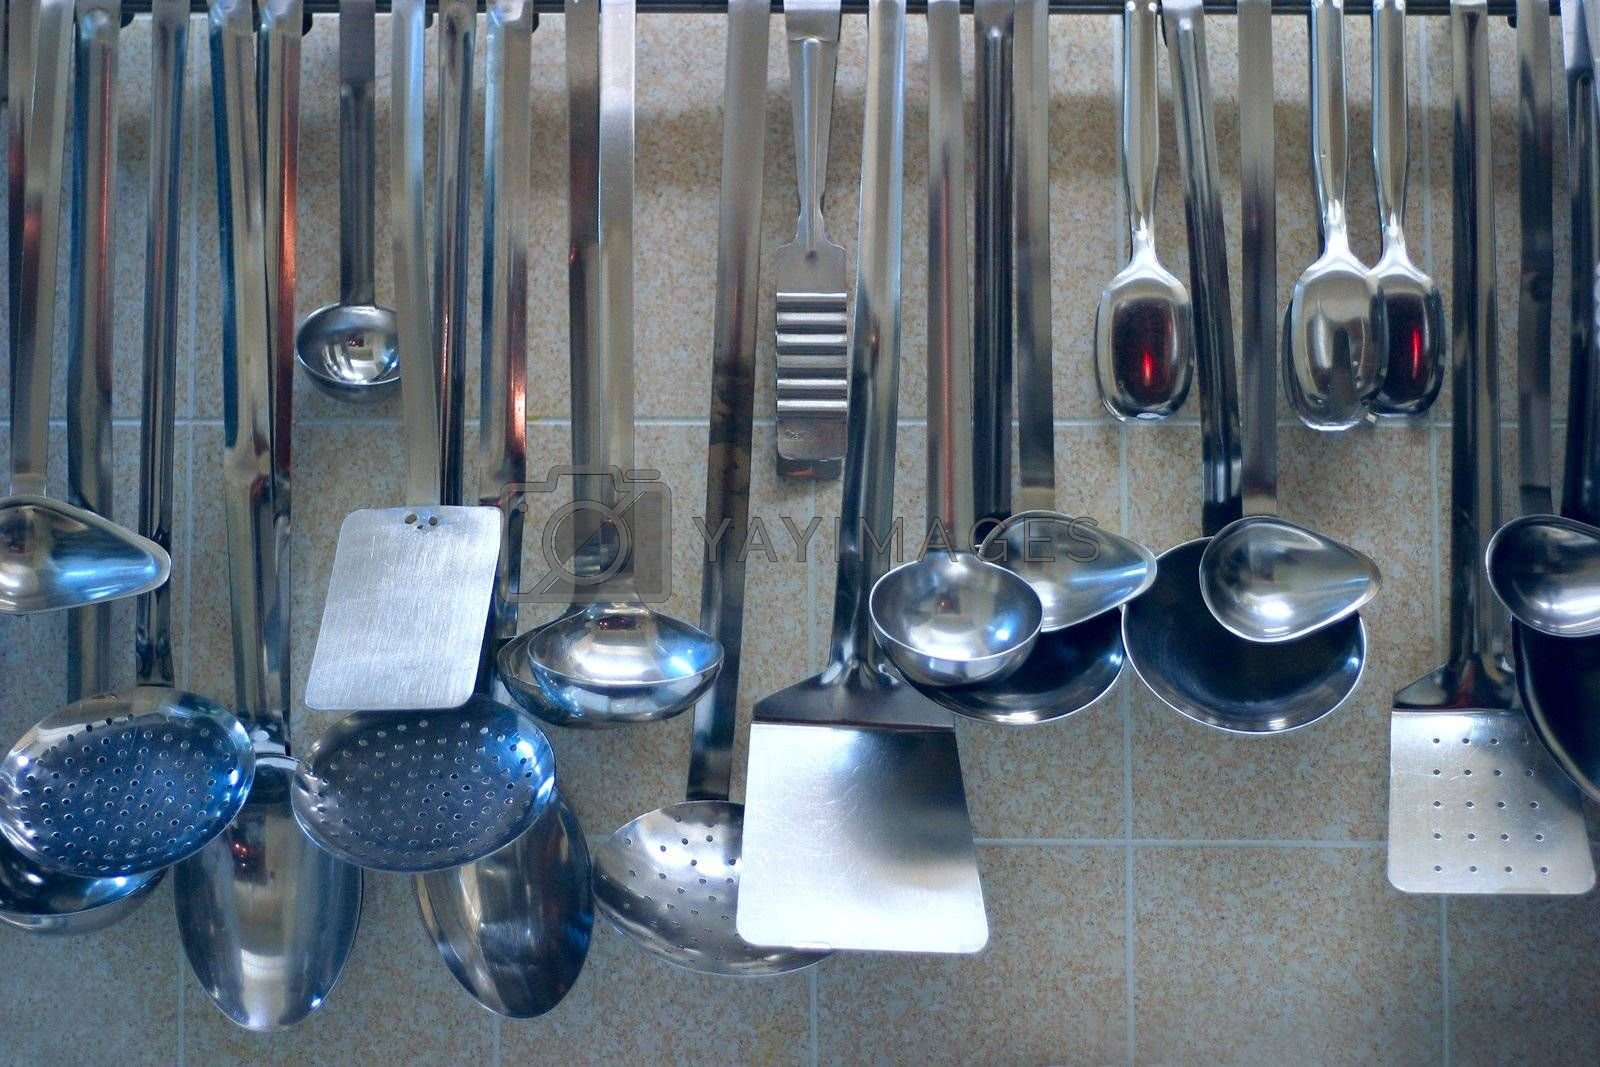 Many different tools for preparation of food at restaurant